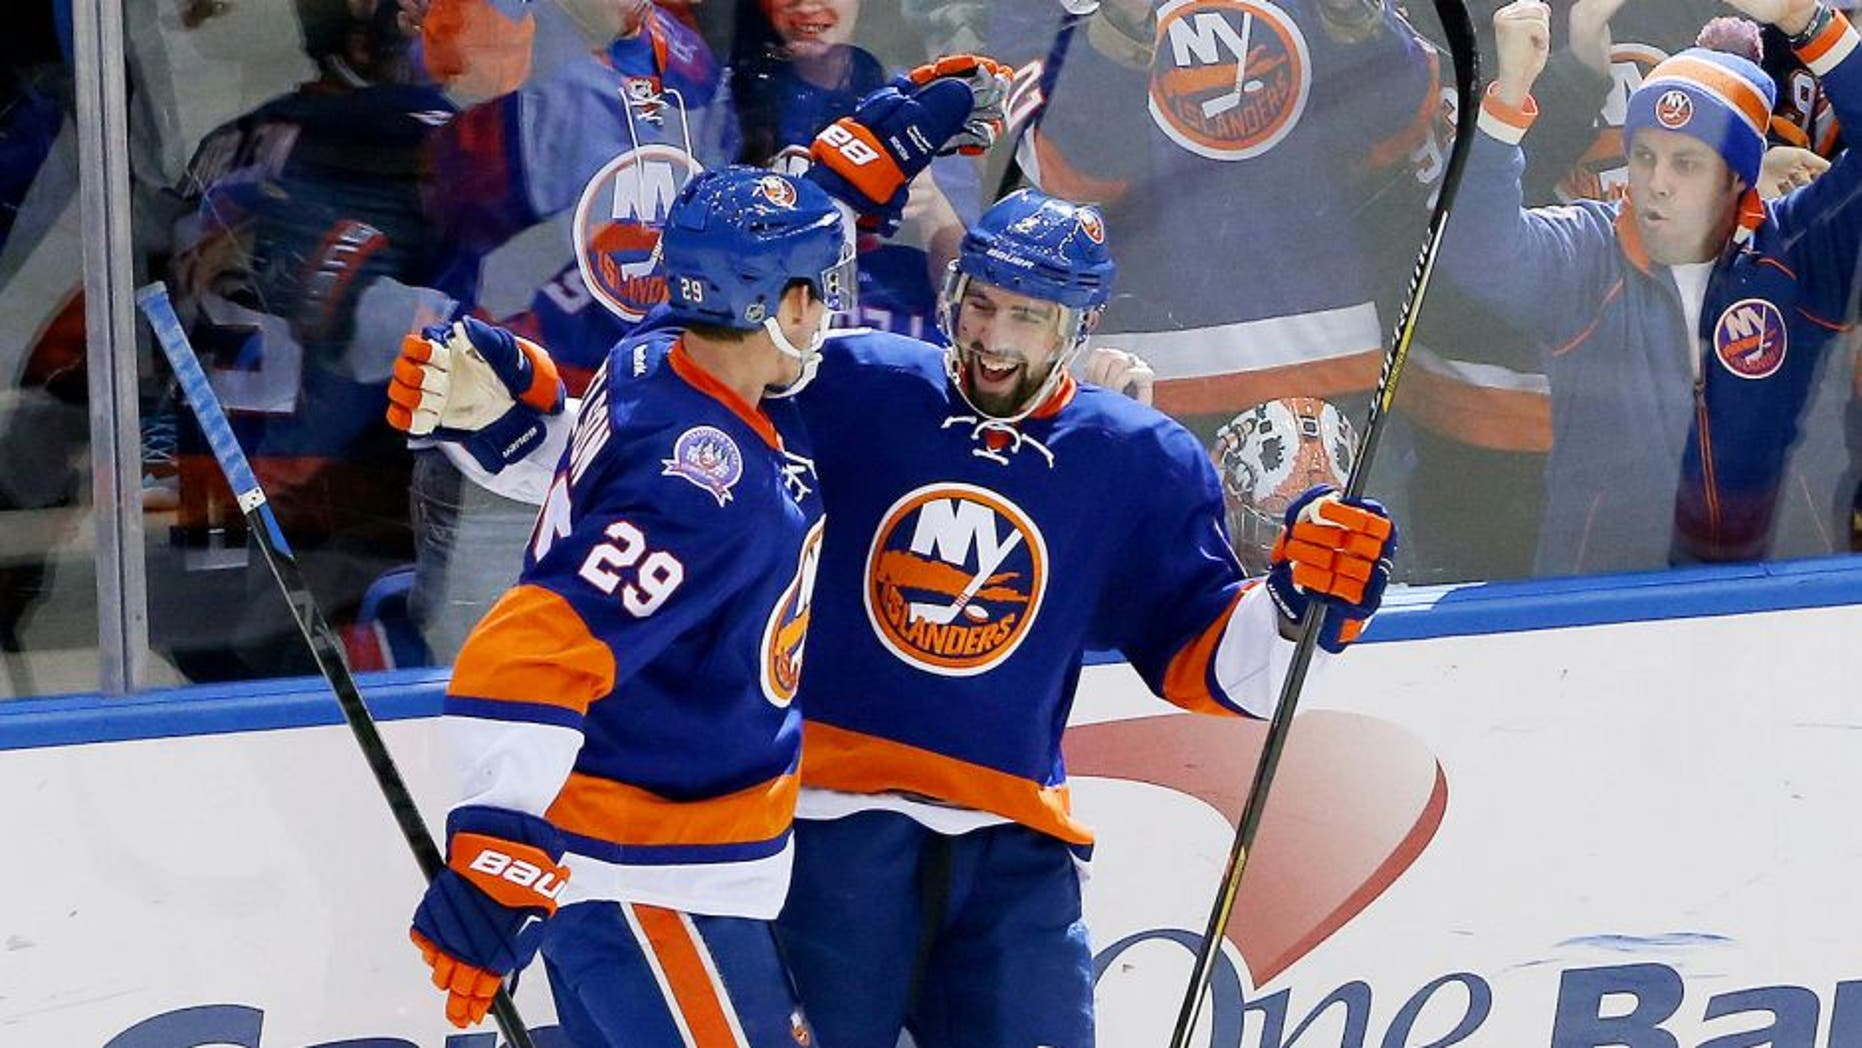 Feb 19, 2015; Uniondale, NY, USA; New York Islanders defenseman Nick Leddy (2) celebrates his goal with center Brock Nelson (29) during the third period against the Nashville Predators at Nassau Veterans Memorial Coliseum. New York Islanders won 5-2. Mandatory Credit: Anthony Gruppuso-USA TODAY Sports